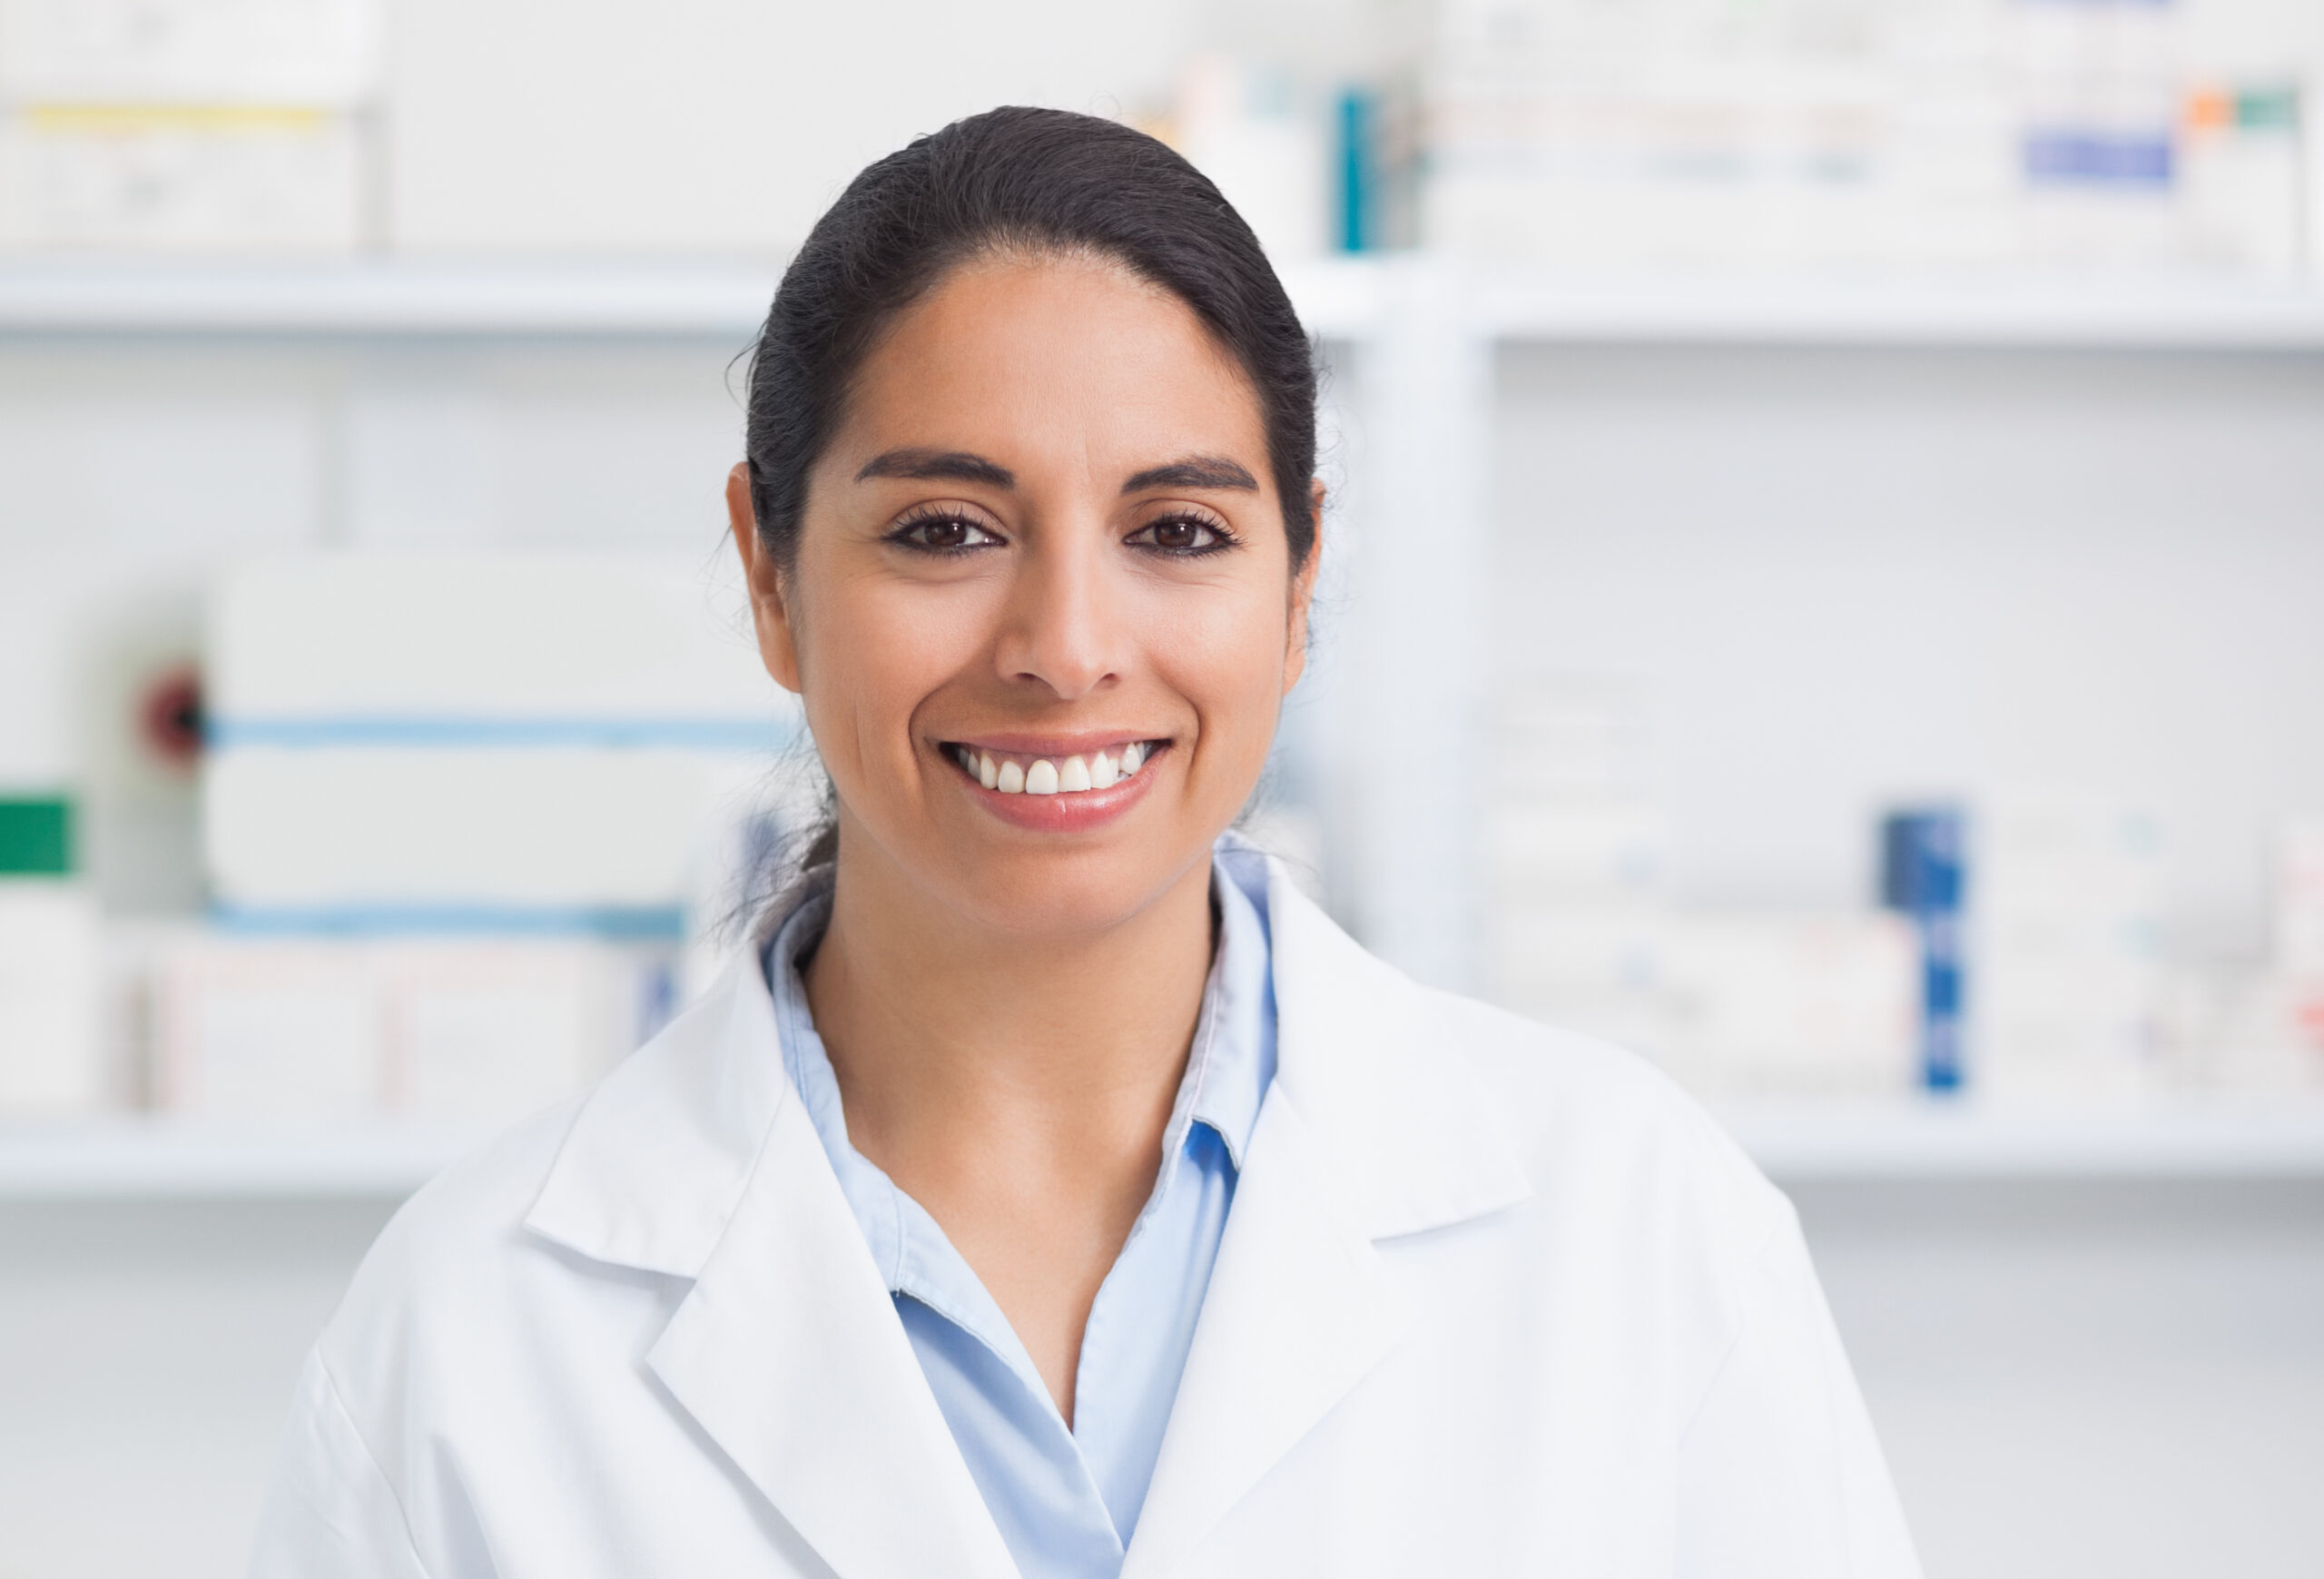 JSSA Specialized Employment services helped a young woman with autism get a pharmacy technician job